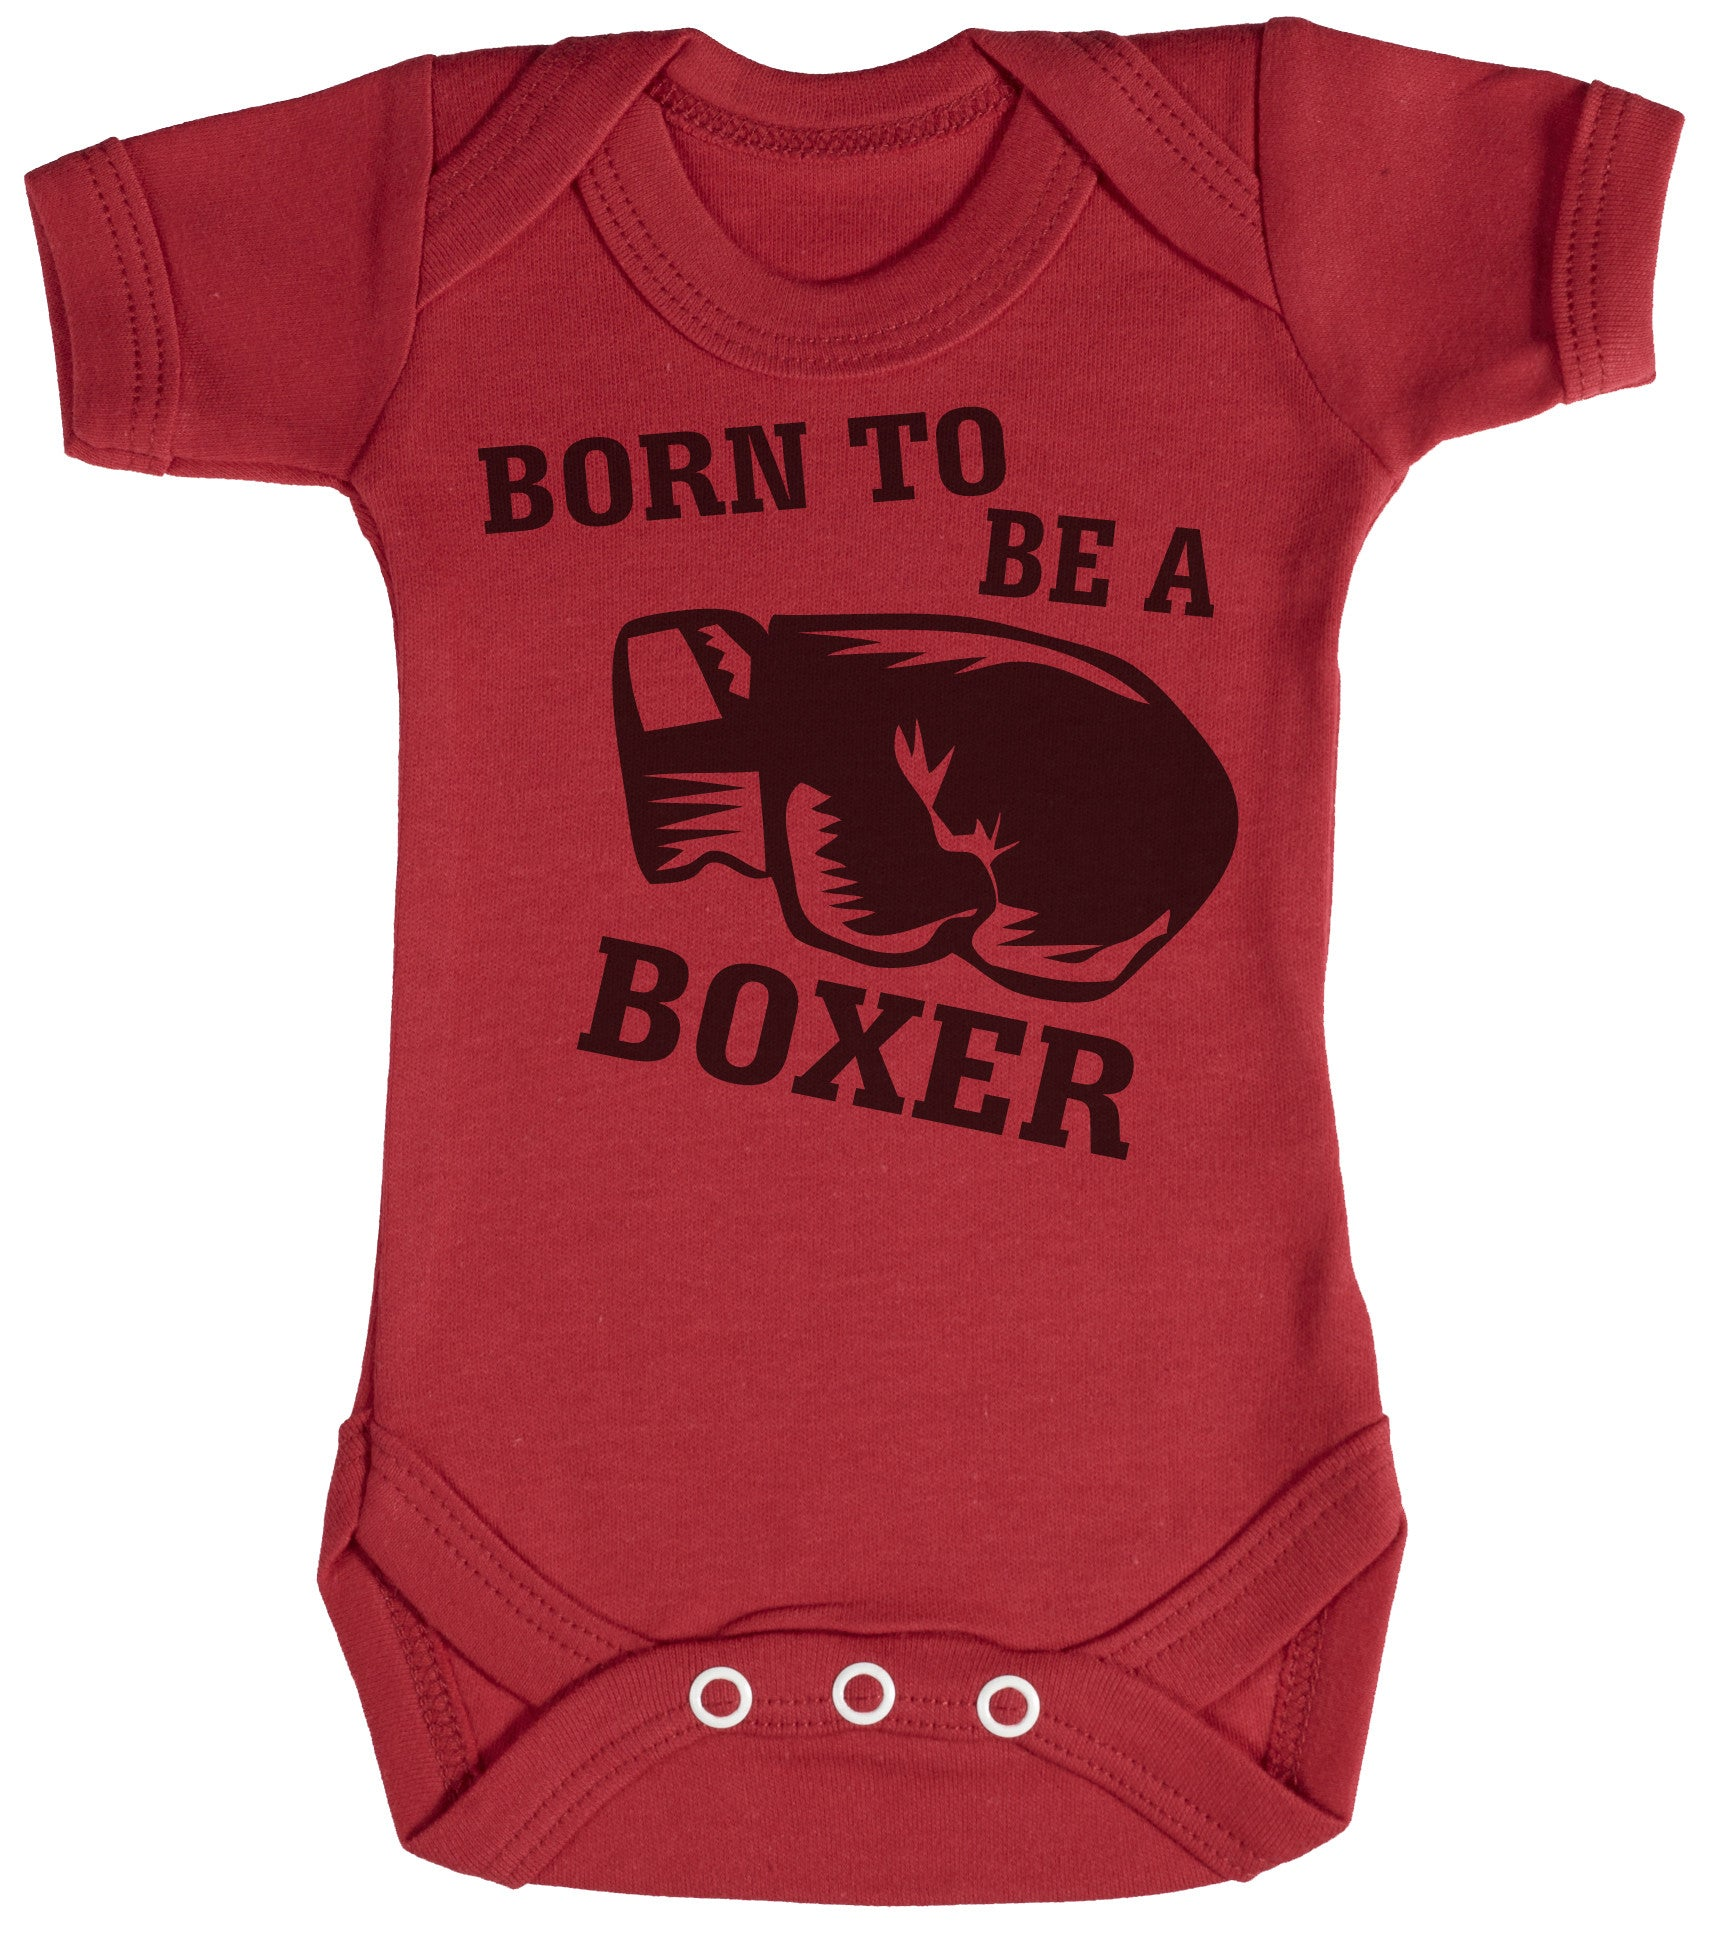 Born To Be A Boxer Baby Bodysuit / Babygrow